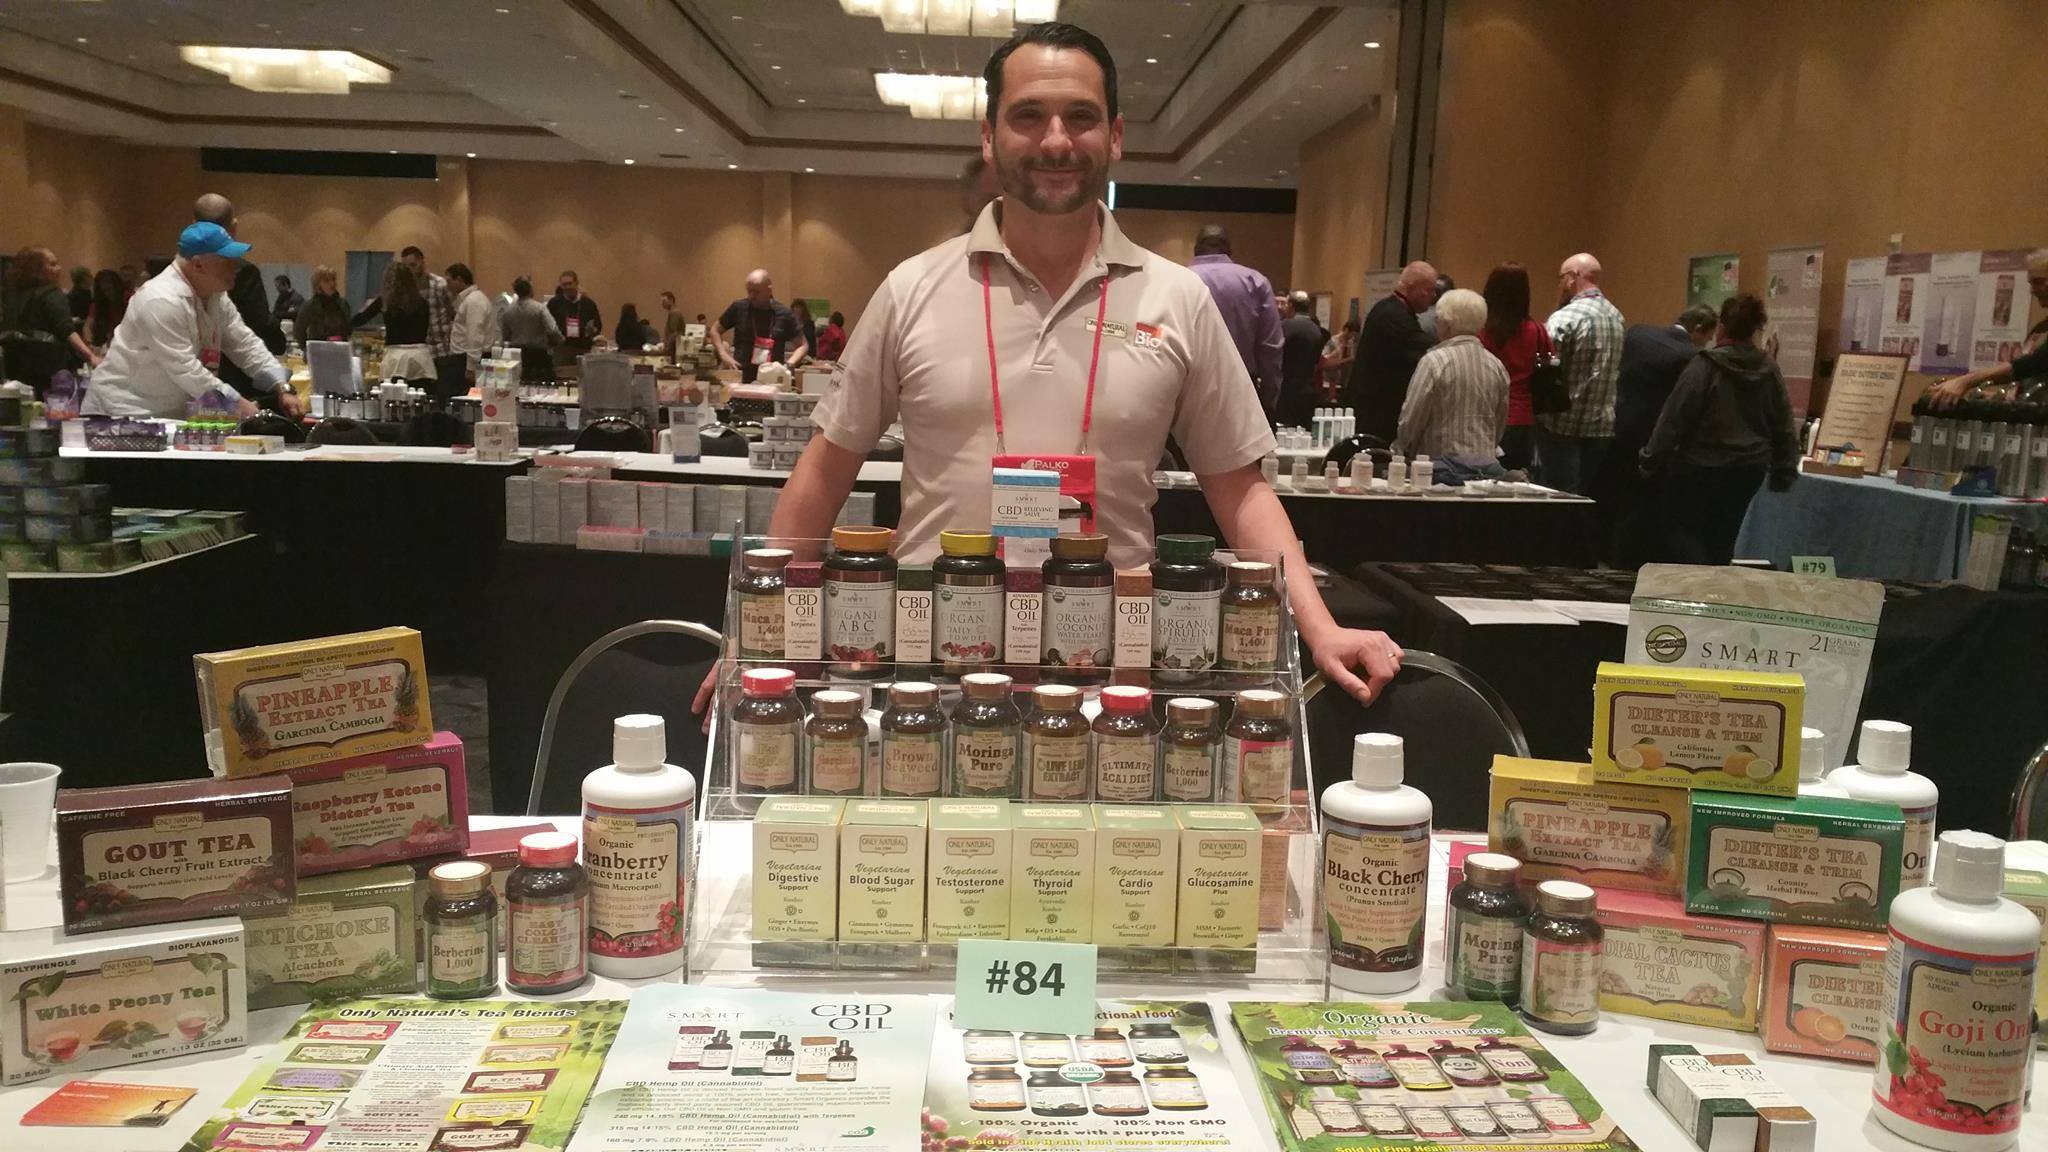 Only Naturals Exhibition